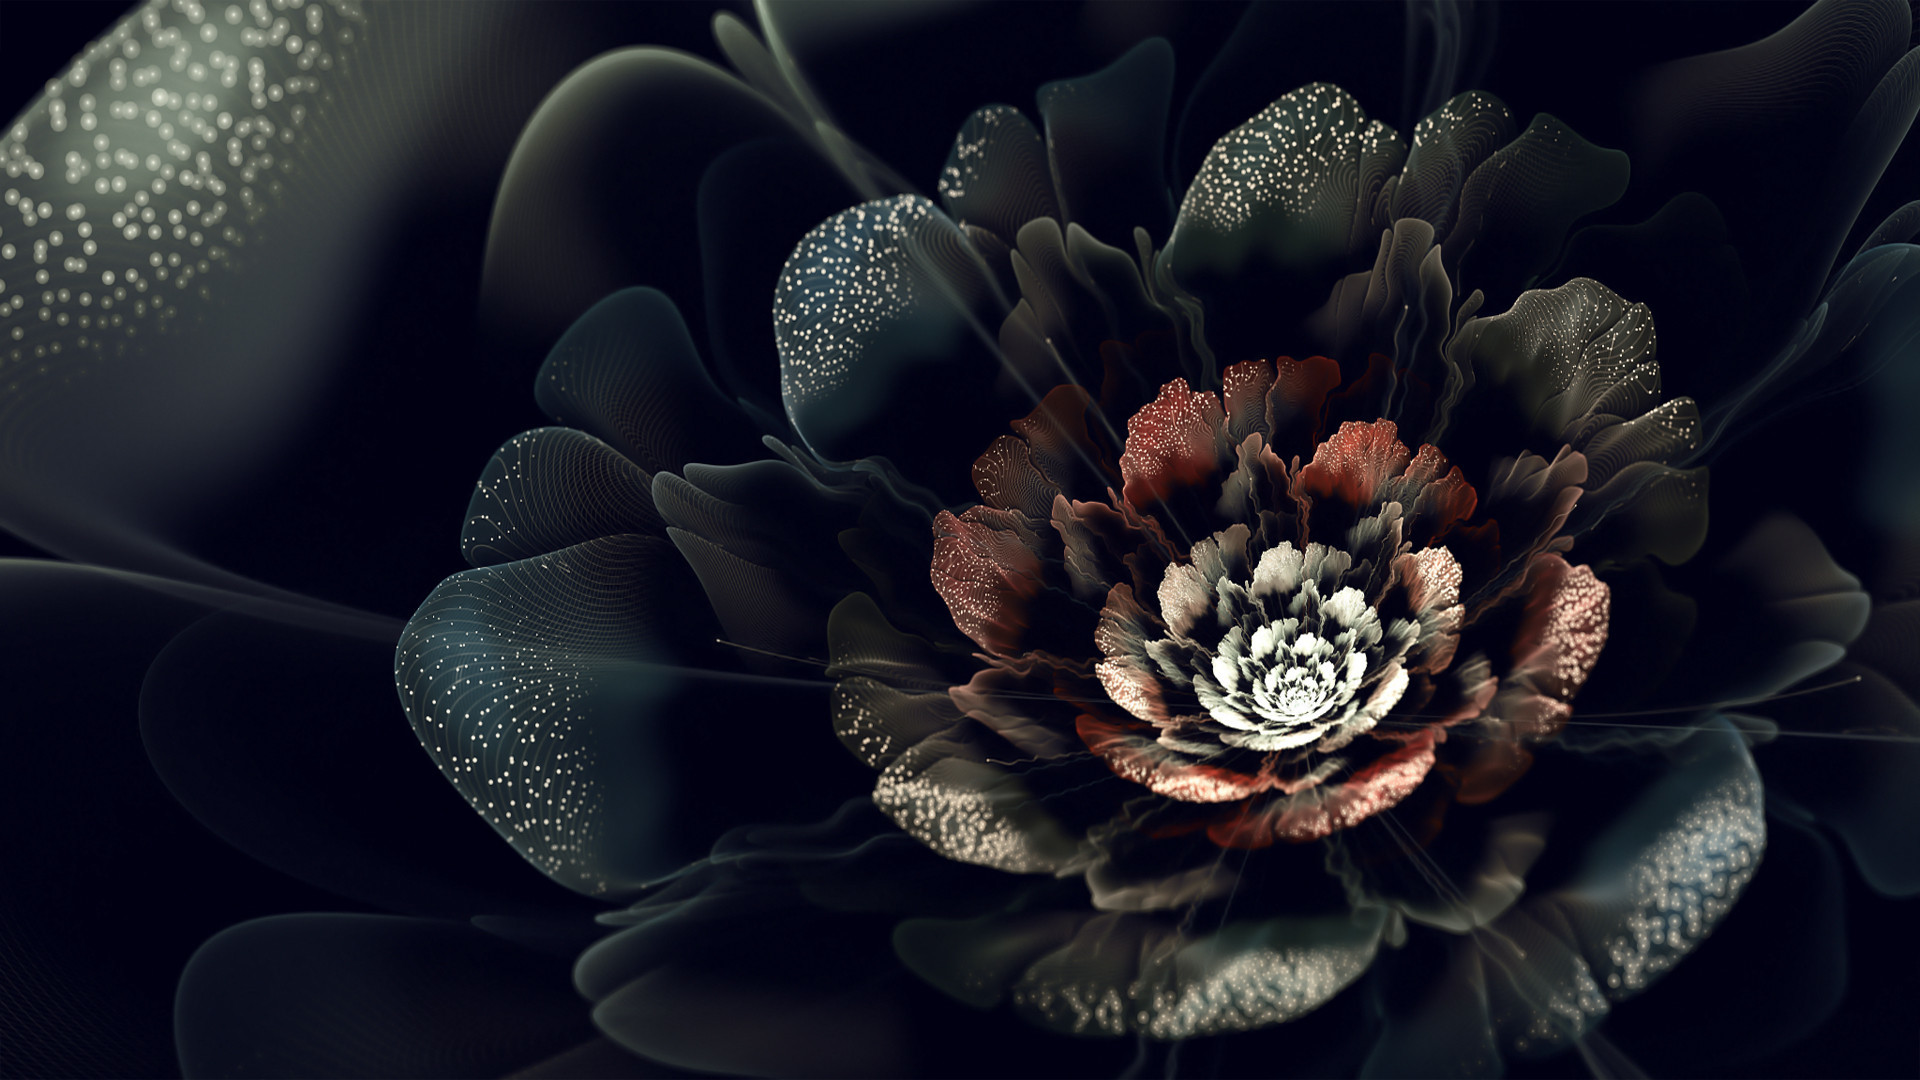 1920x1080 Pictures black rose HD wallpapers images.